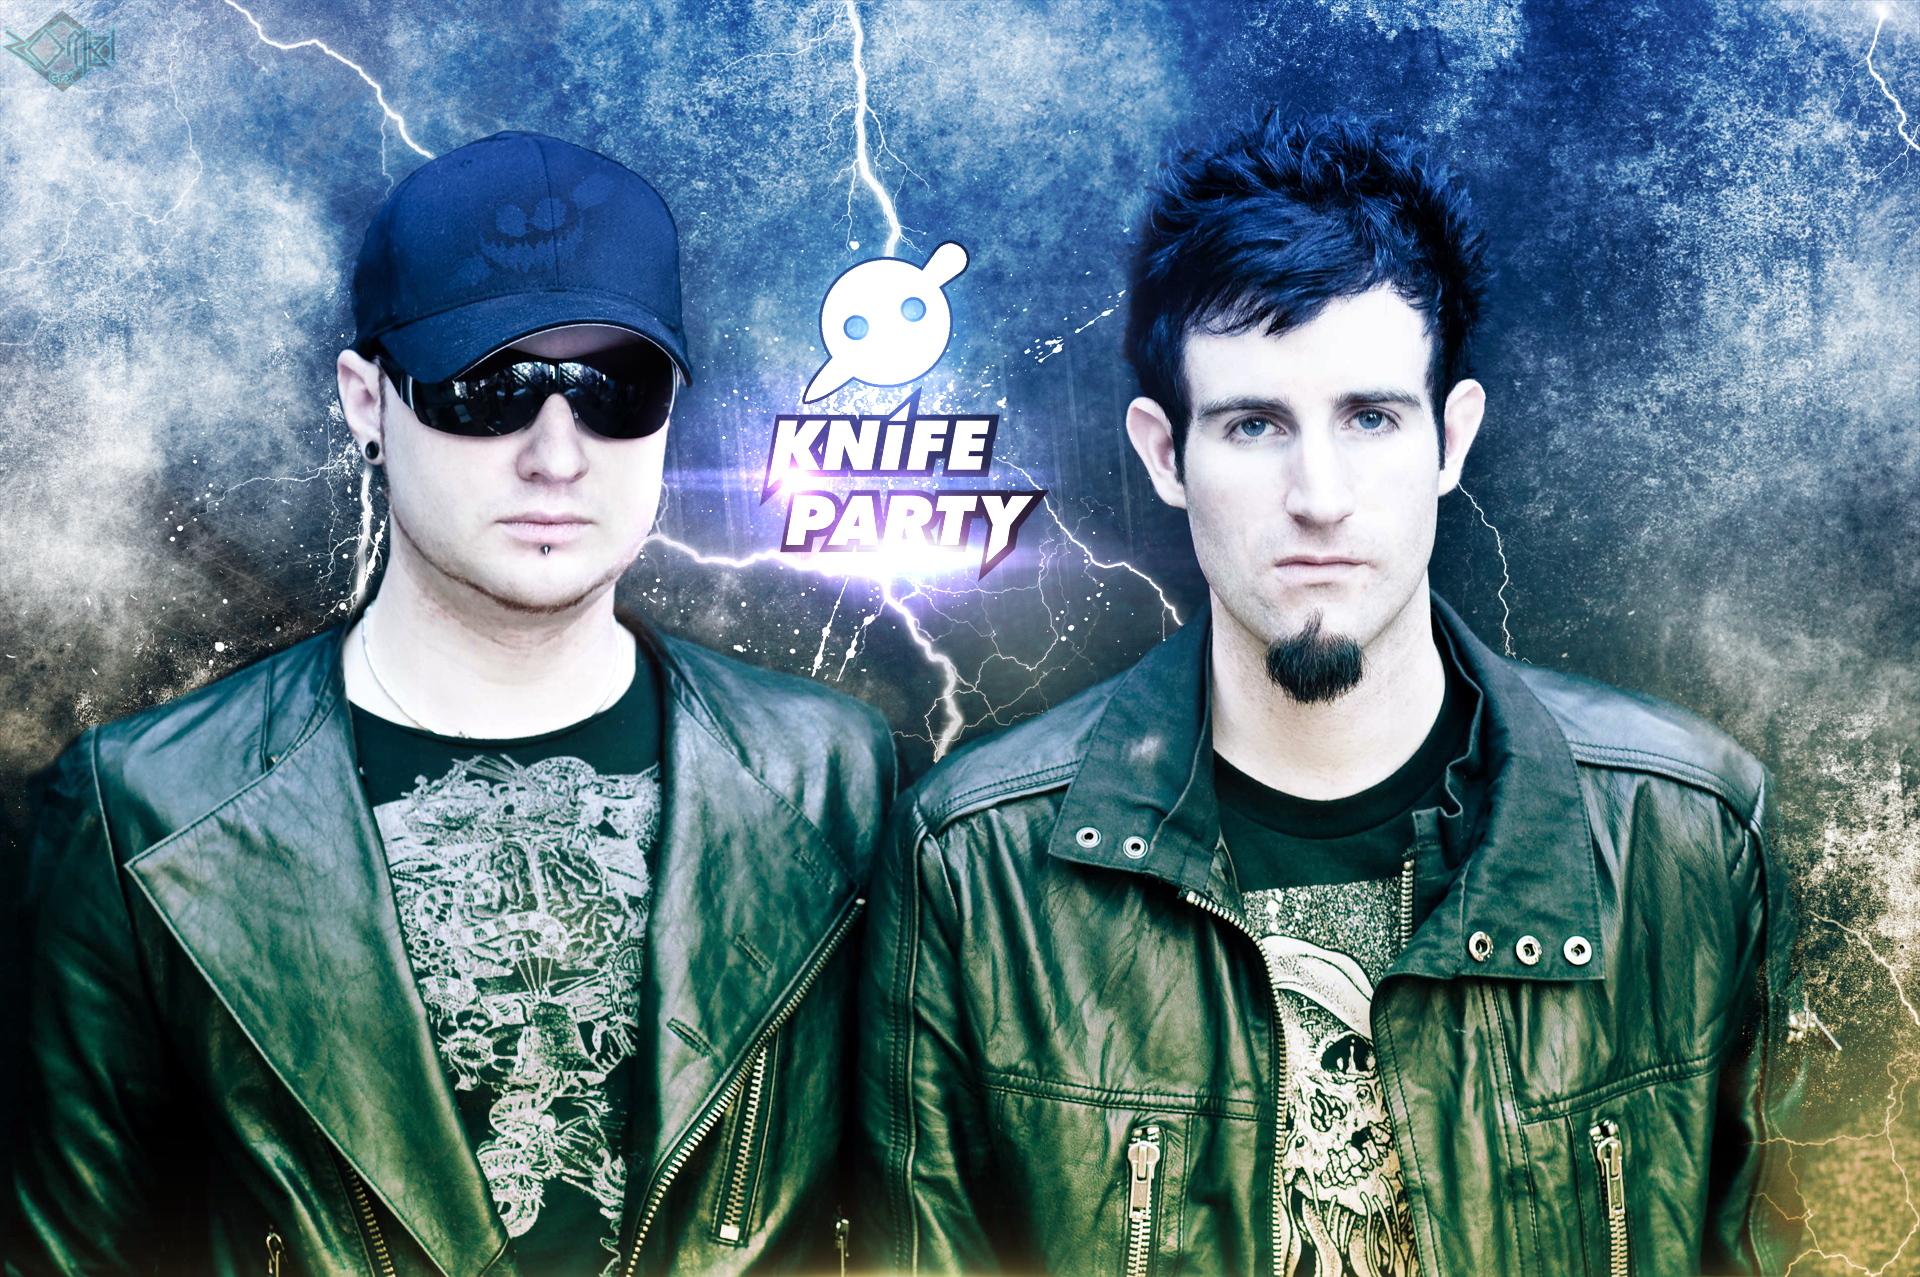 Knife Wallpaper Knife Party Wallpaper by